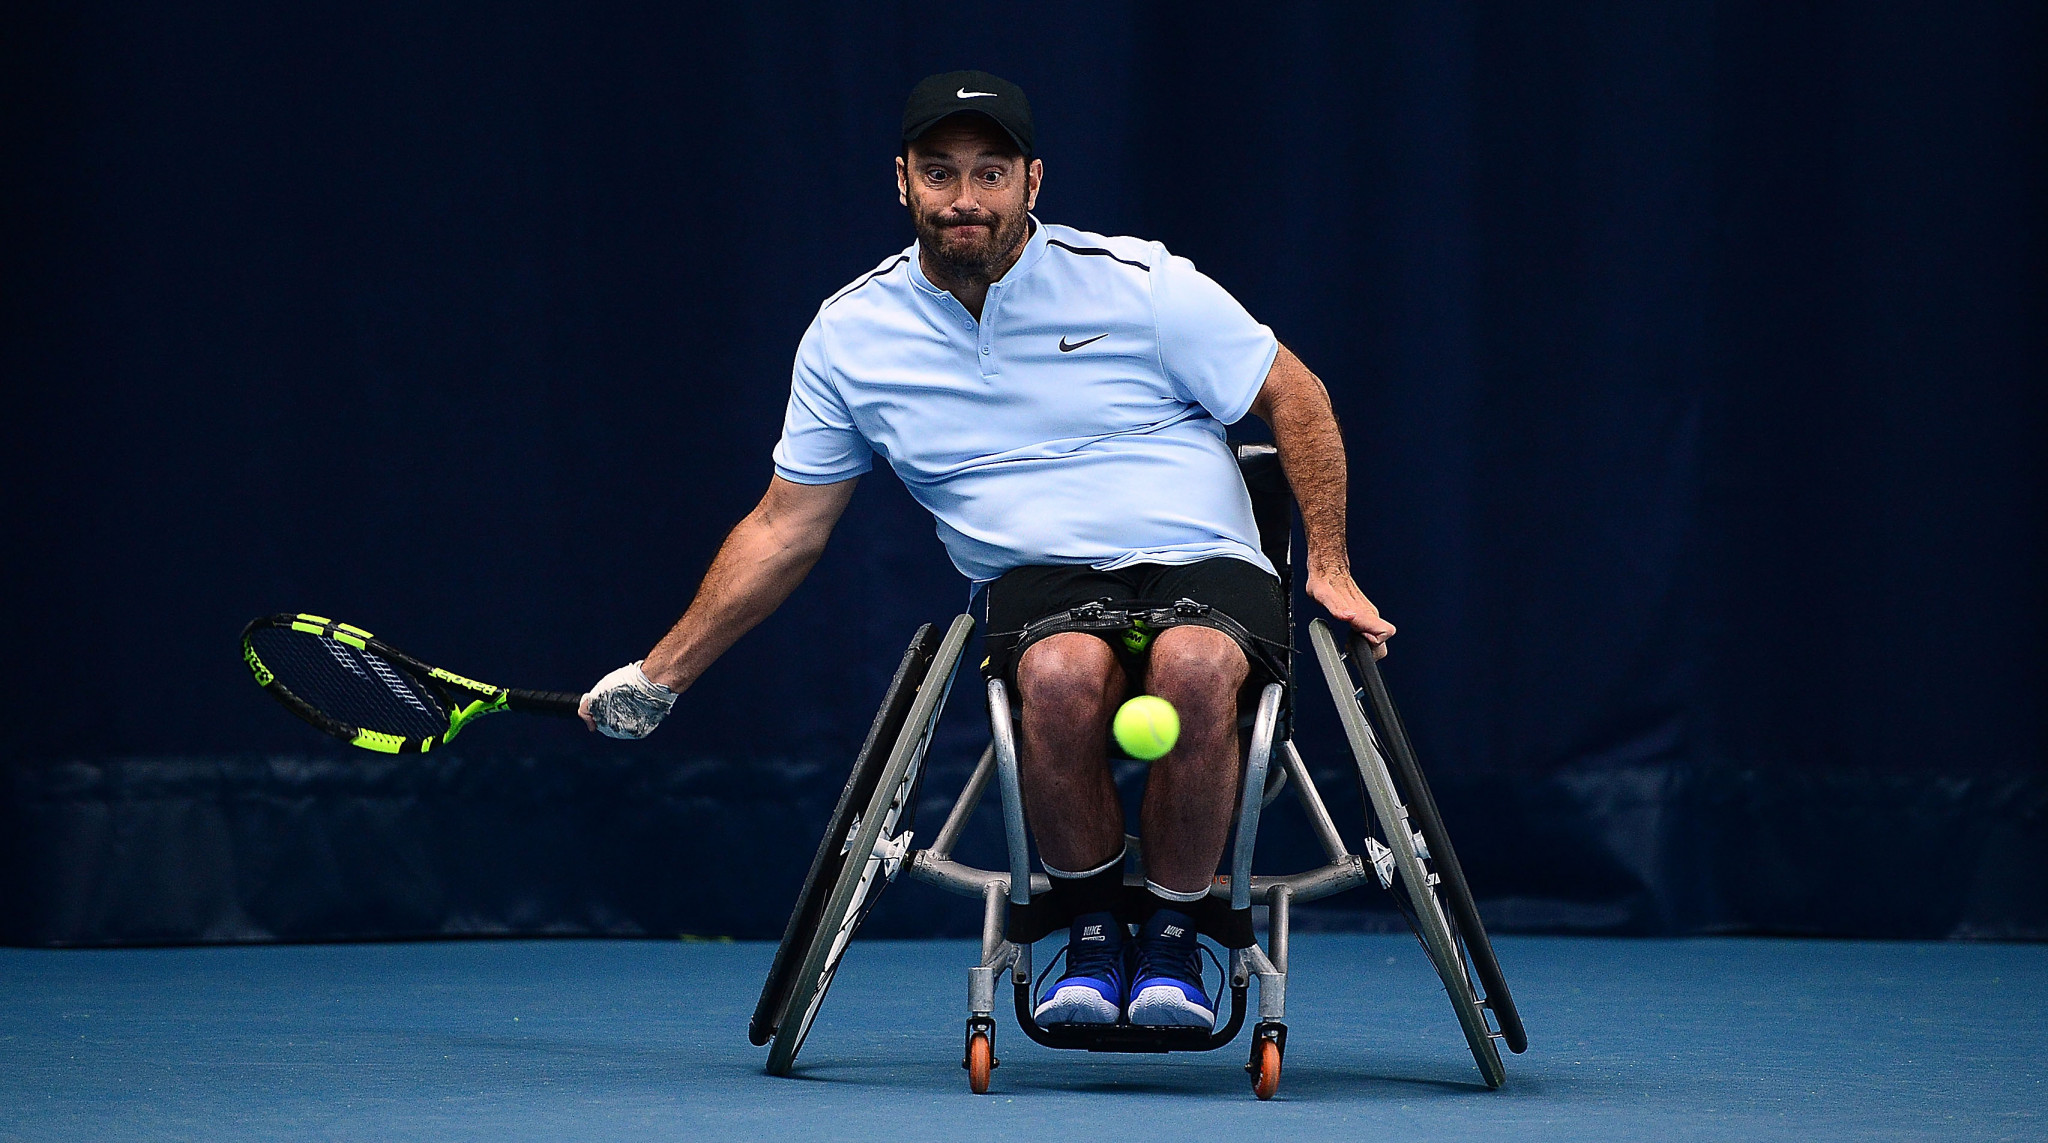 World number one ranking the top prize at NEC Wheelchair Tennis Masters